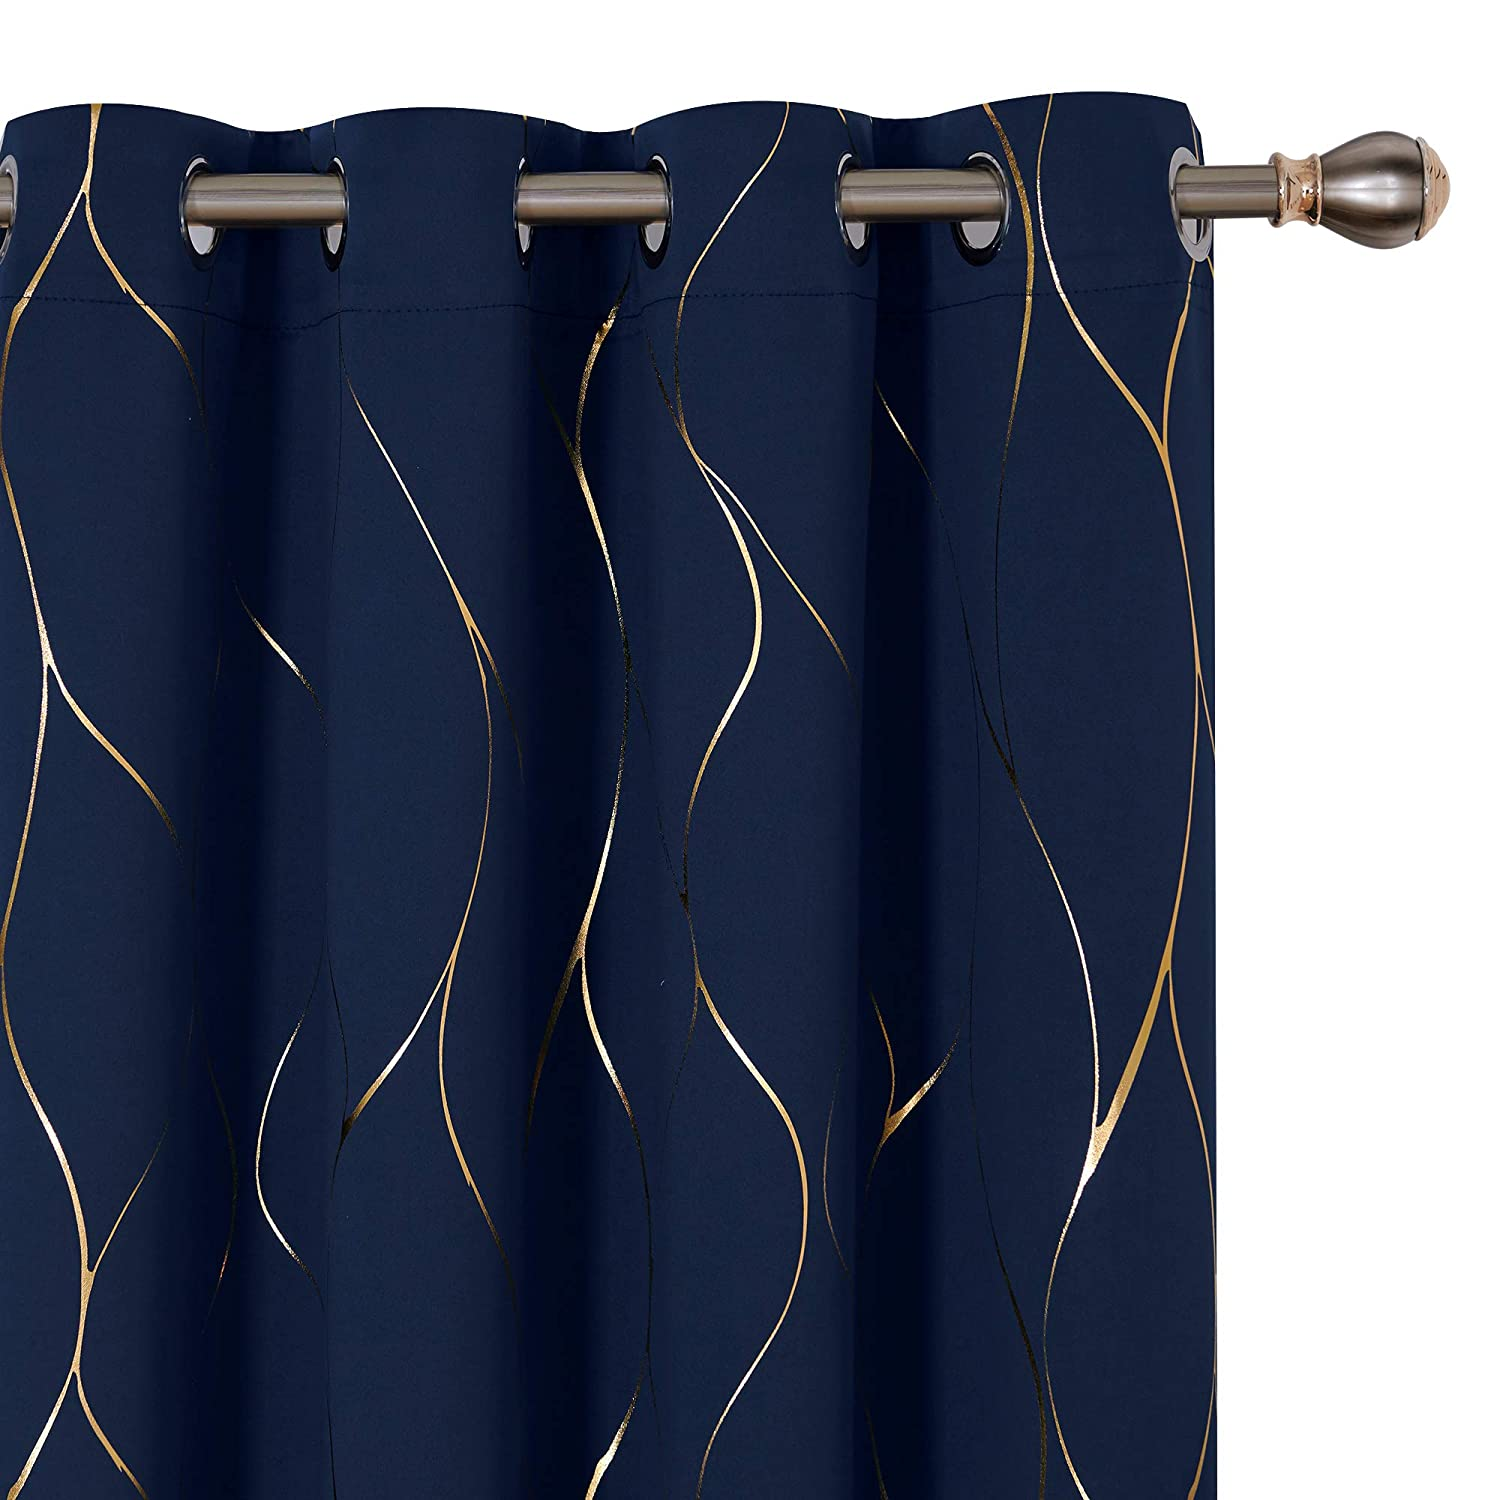 Deconovo Gold Wave Foil Print Blackout Curtains Grommet Light Blocking Room Darkening Curtain Noise Reducing Window Draperies for Living Room 52W x 84L Inch Set of 2 Panels Navy Blue